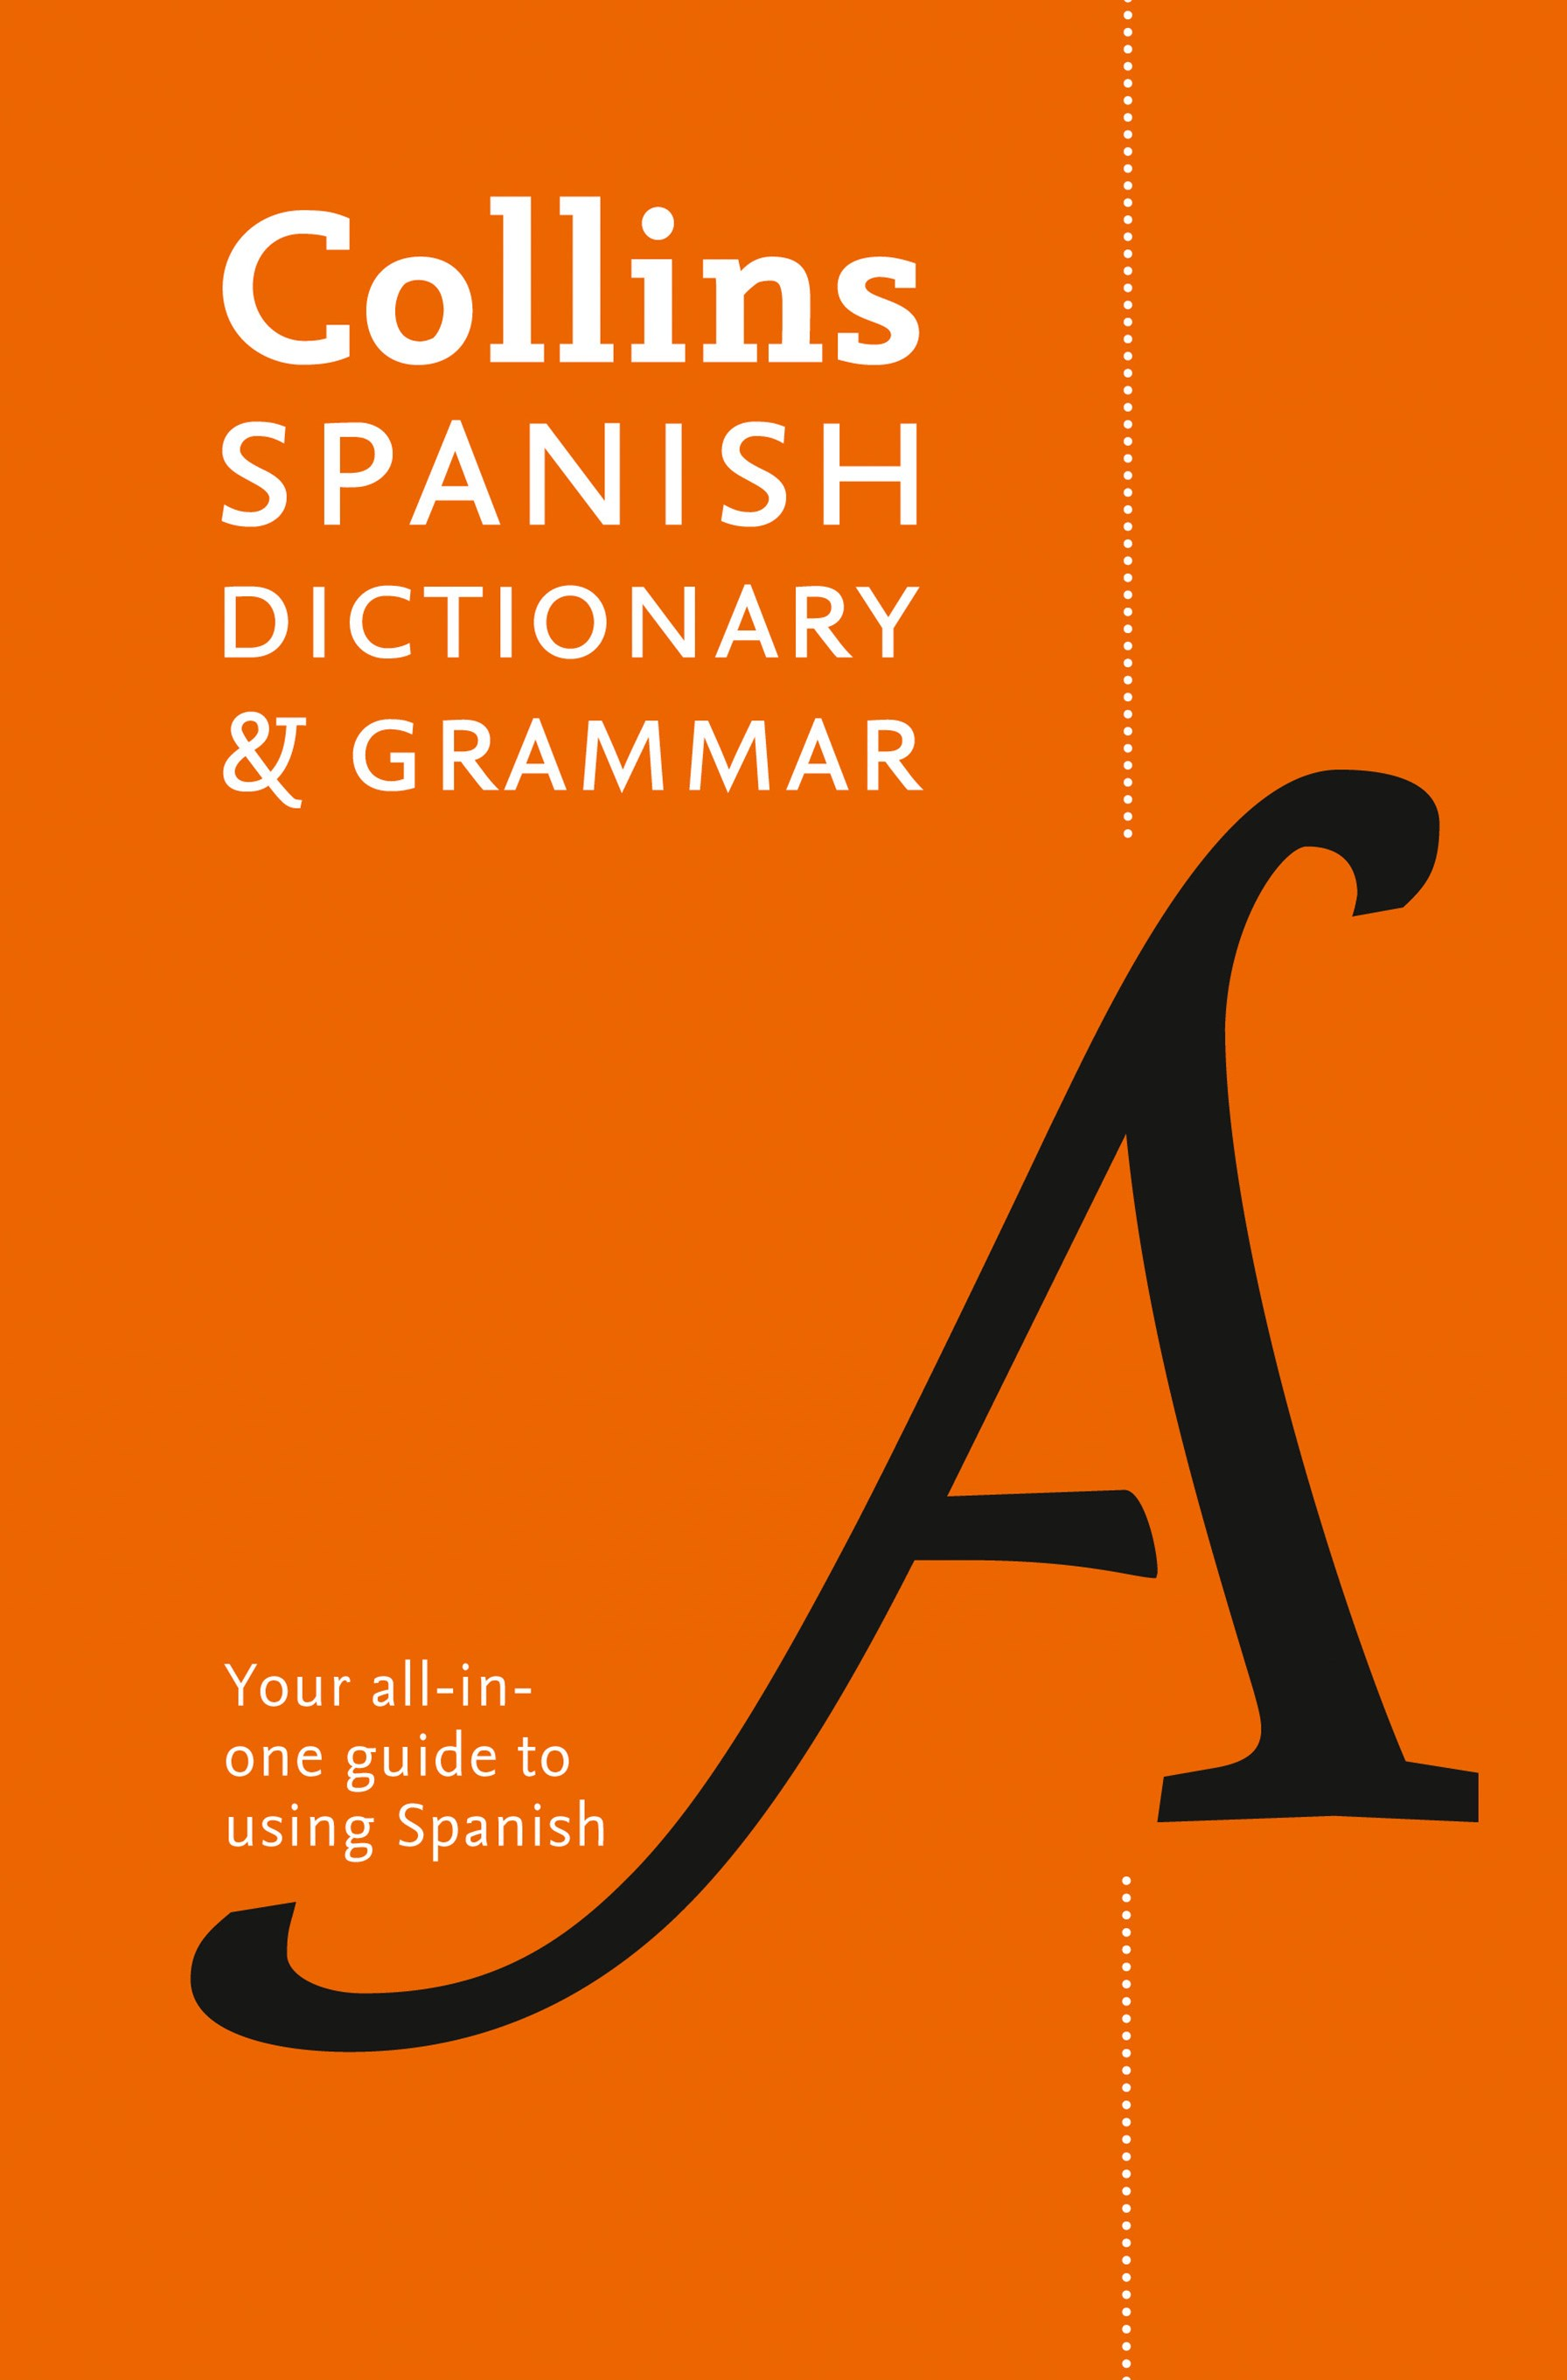 Collins Spanish Dictionary and Grammar [7th Edition]